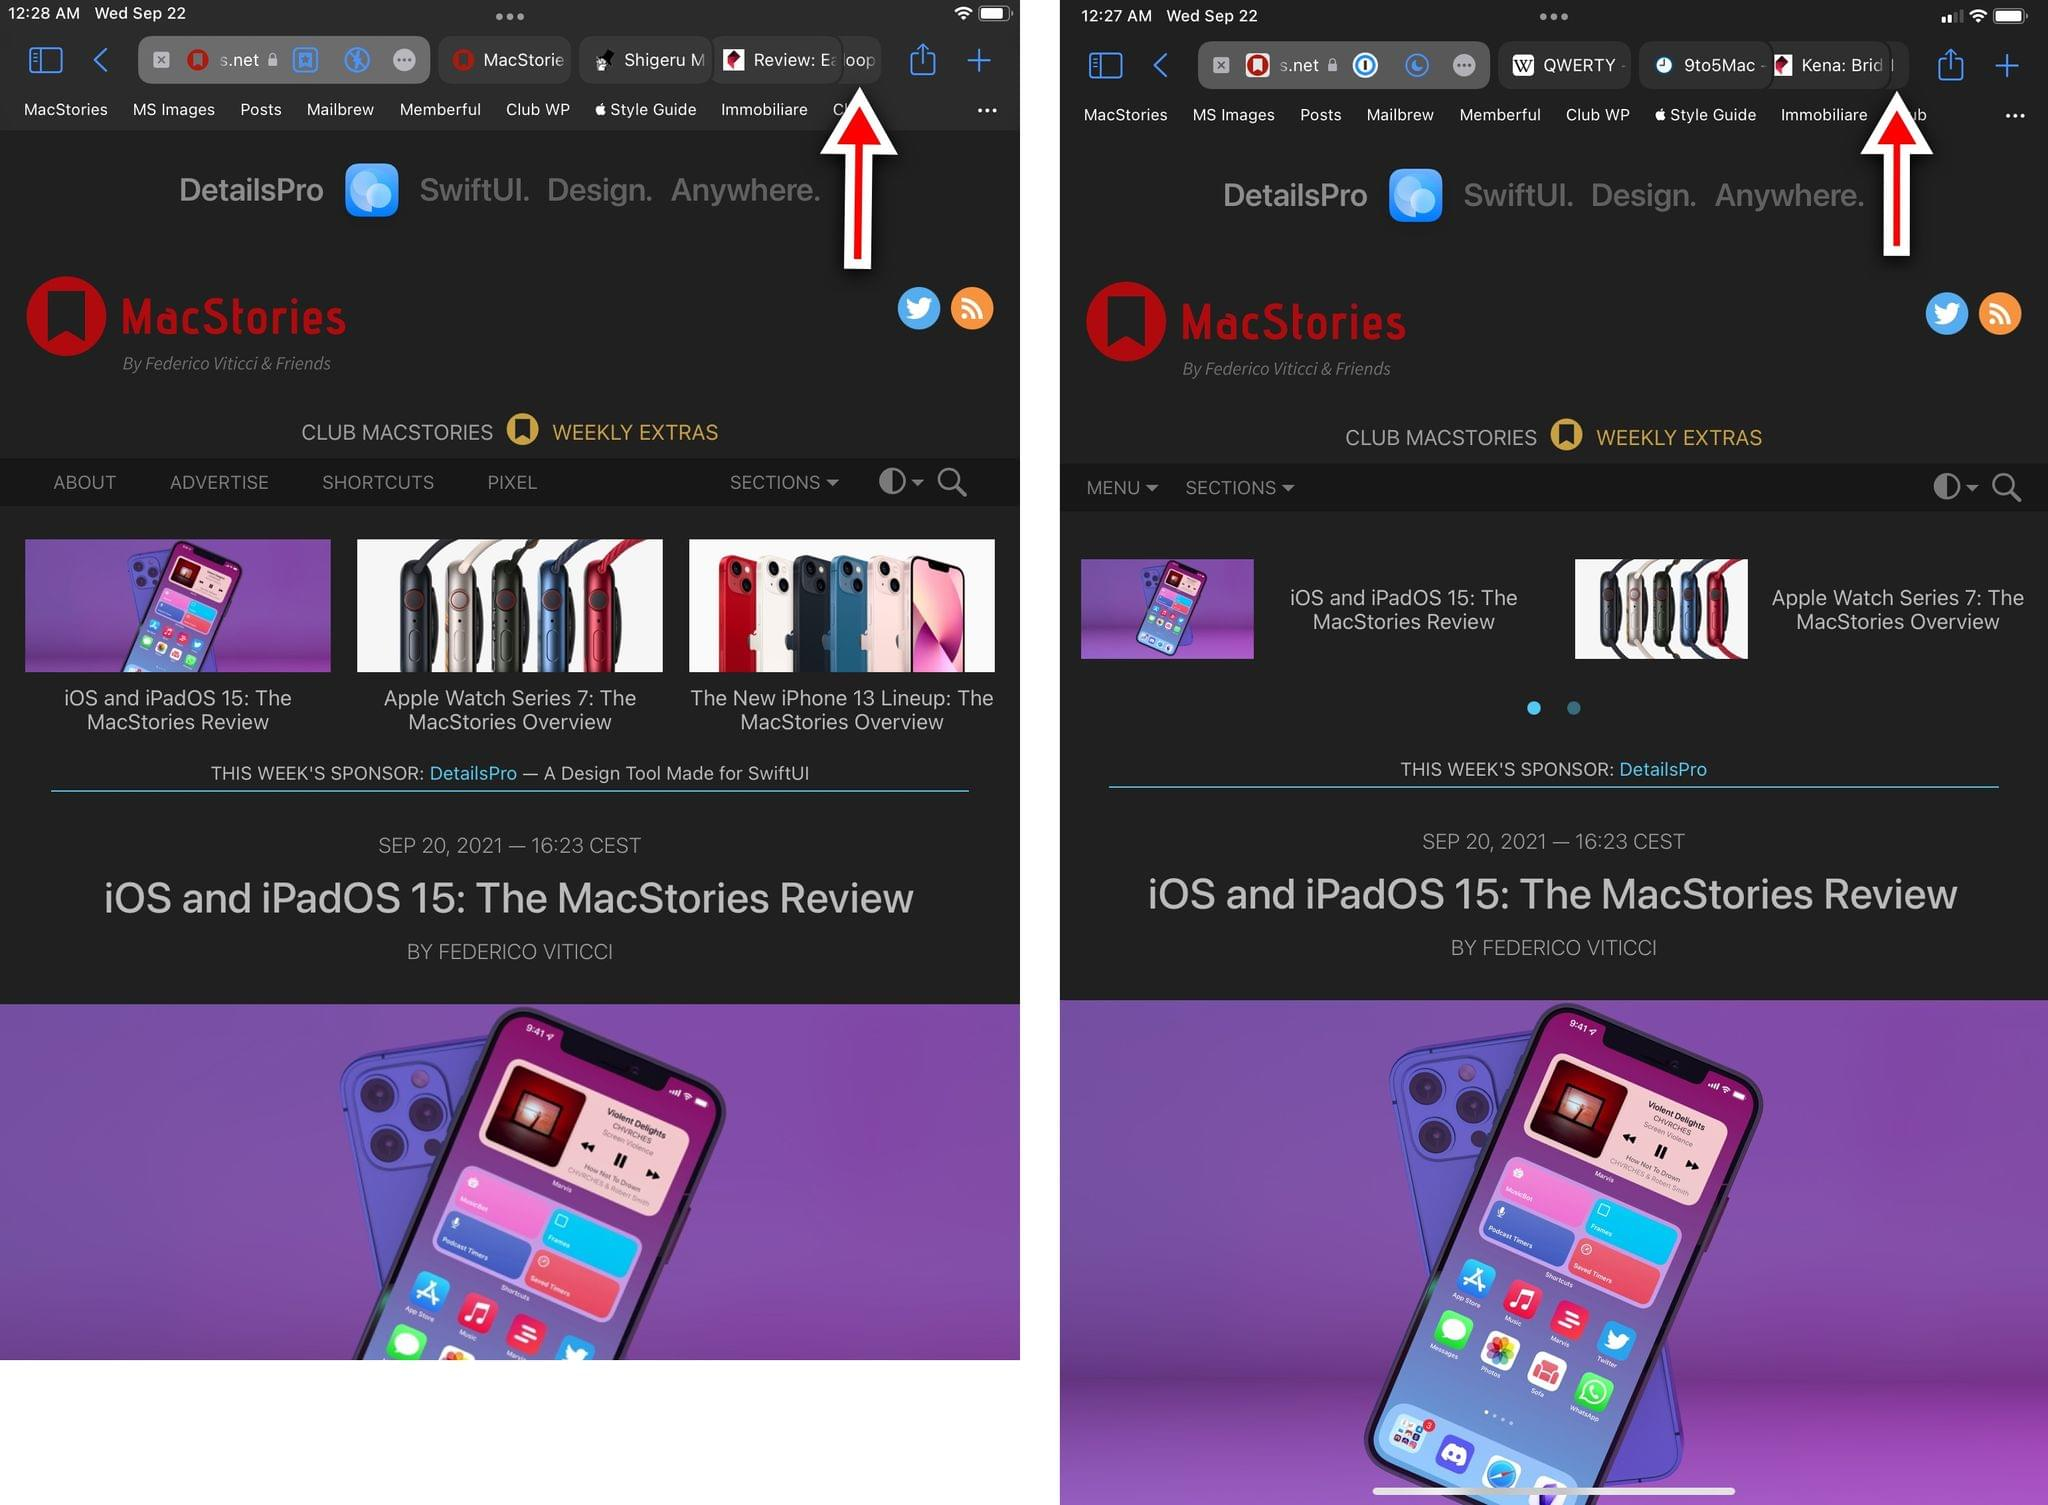 On the old mini (left), you see a tiny portion of an extra tab in Safari. I think it's more important how much vertical space you gain with the new iPad mini instead (right).